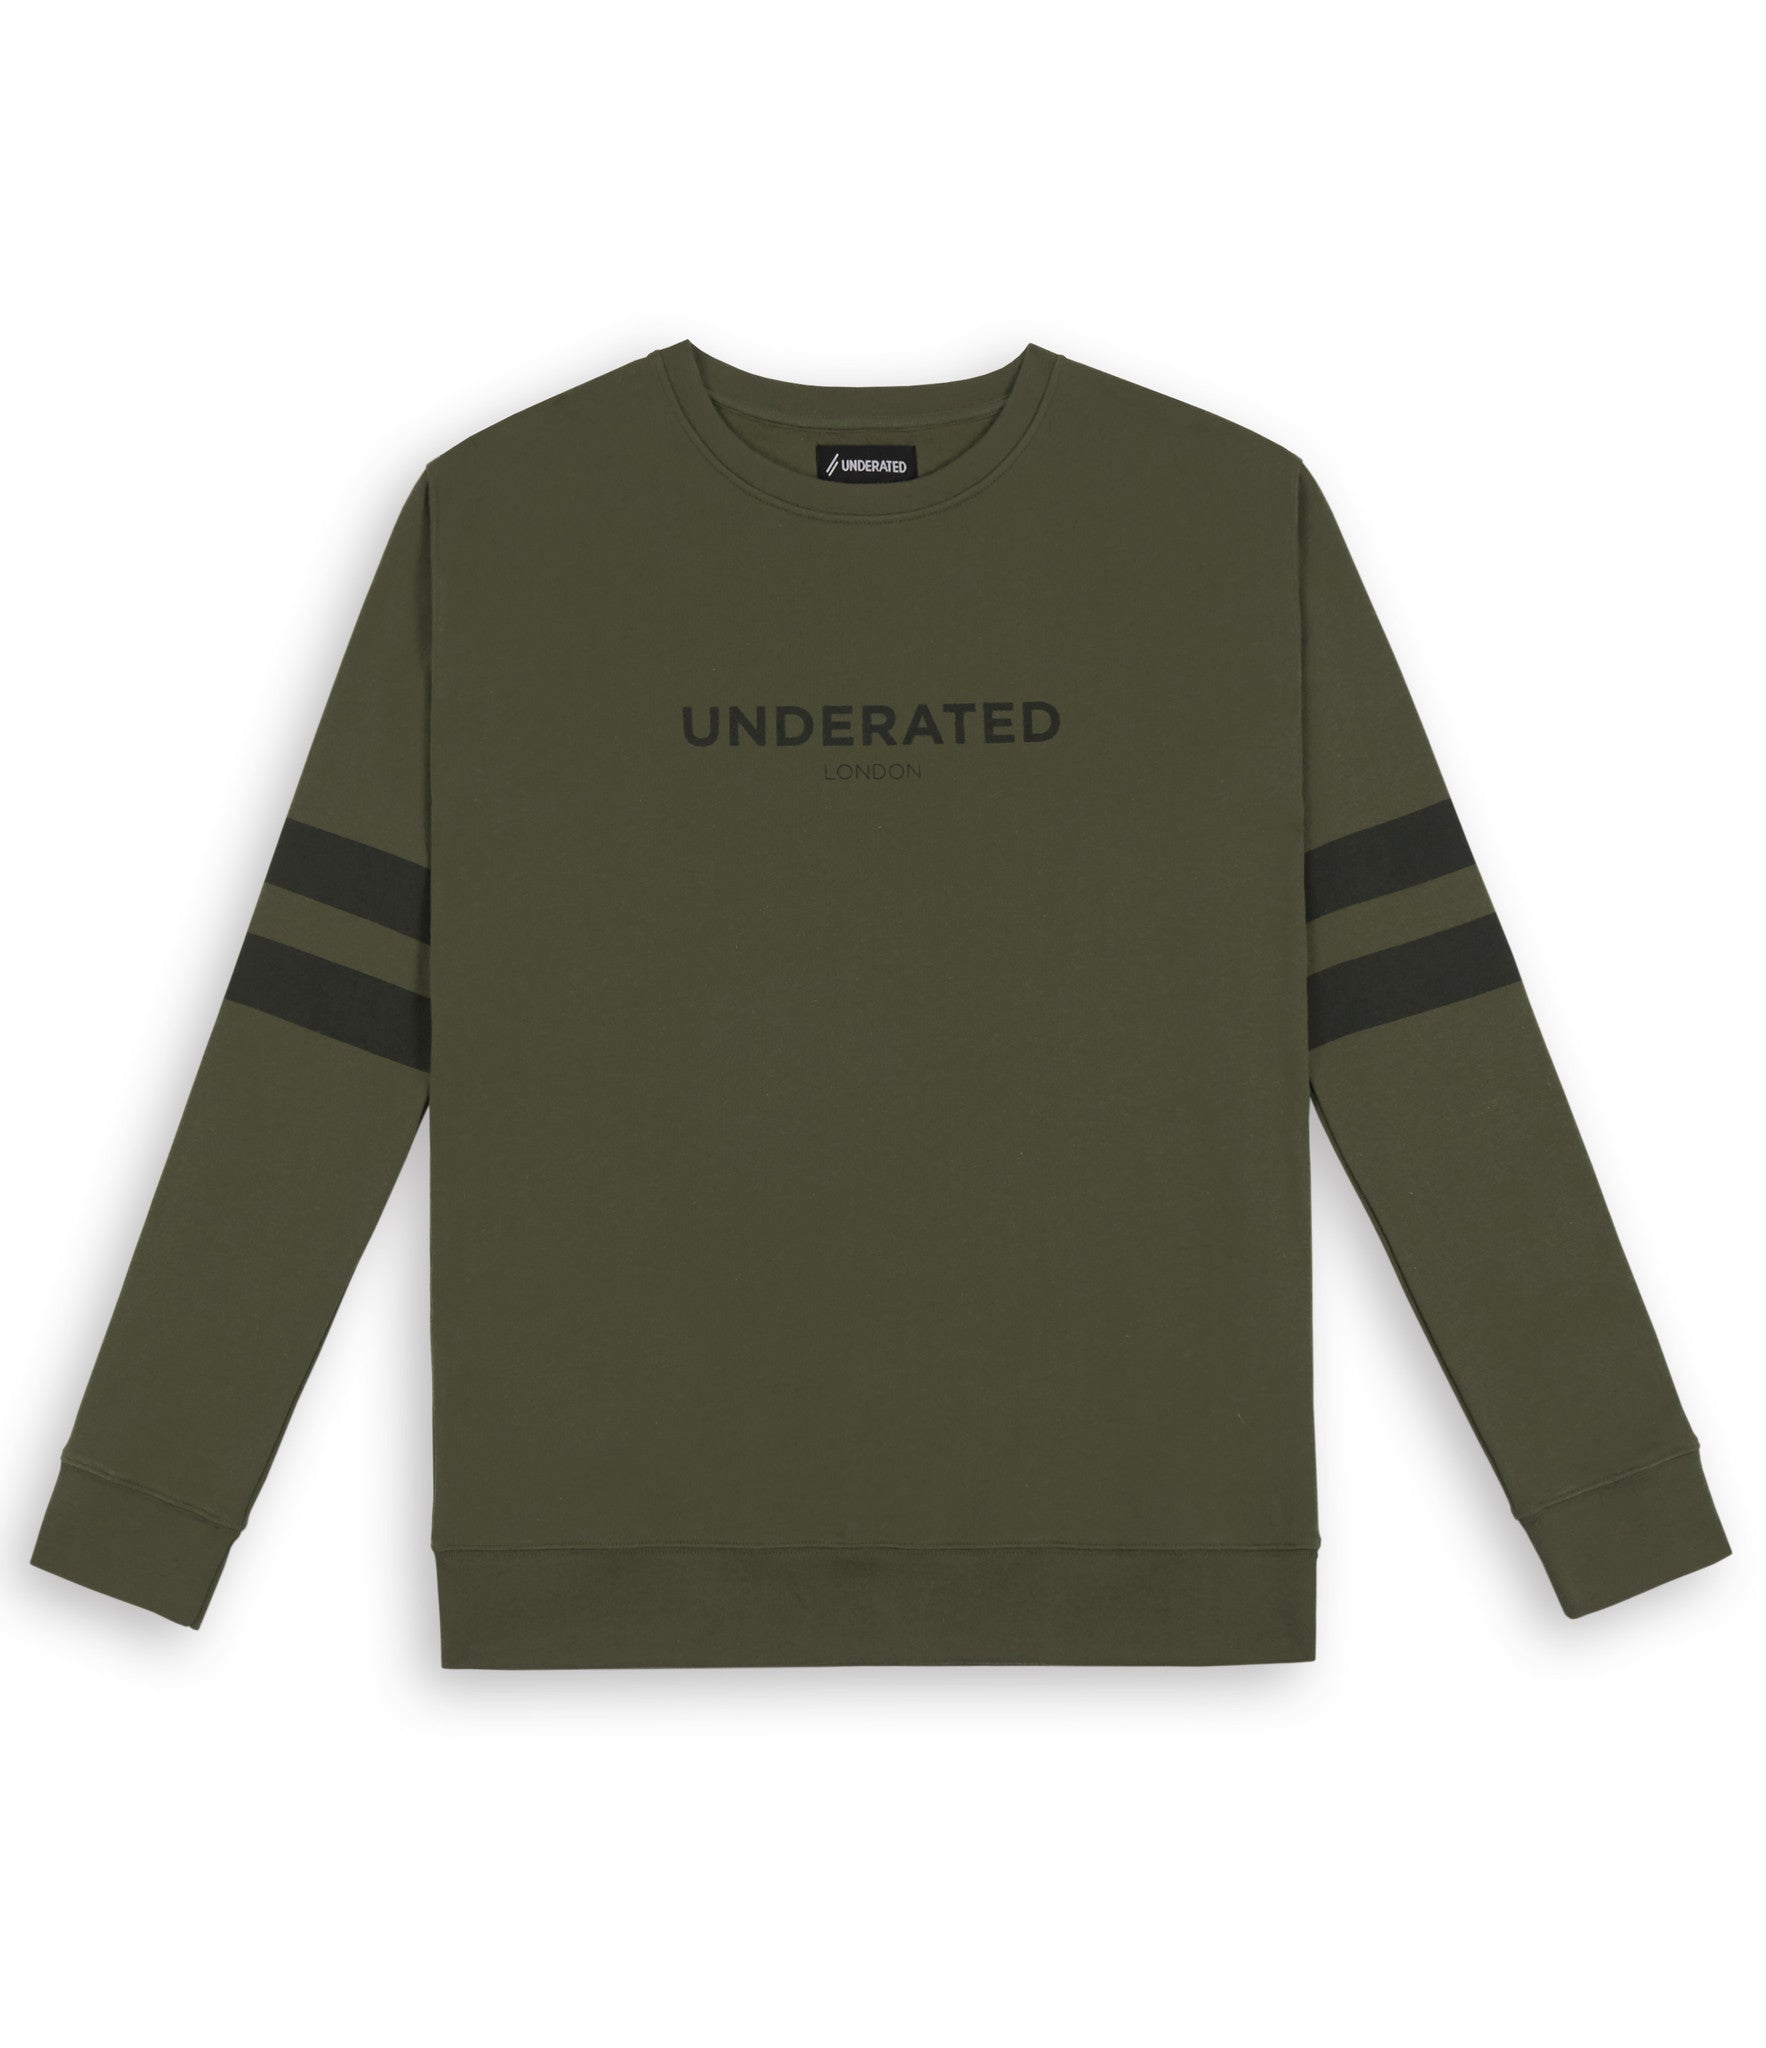 SW400 Tonal Print Sweatshirt - Khaki - underated london - underatedco - 1